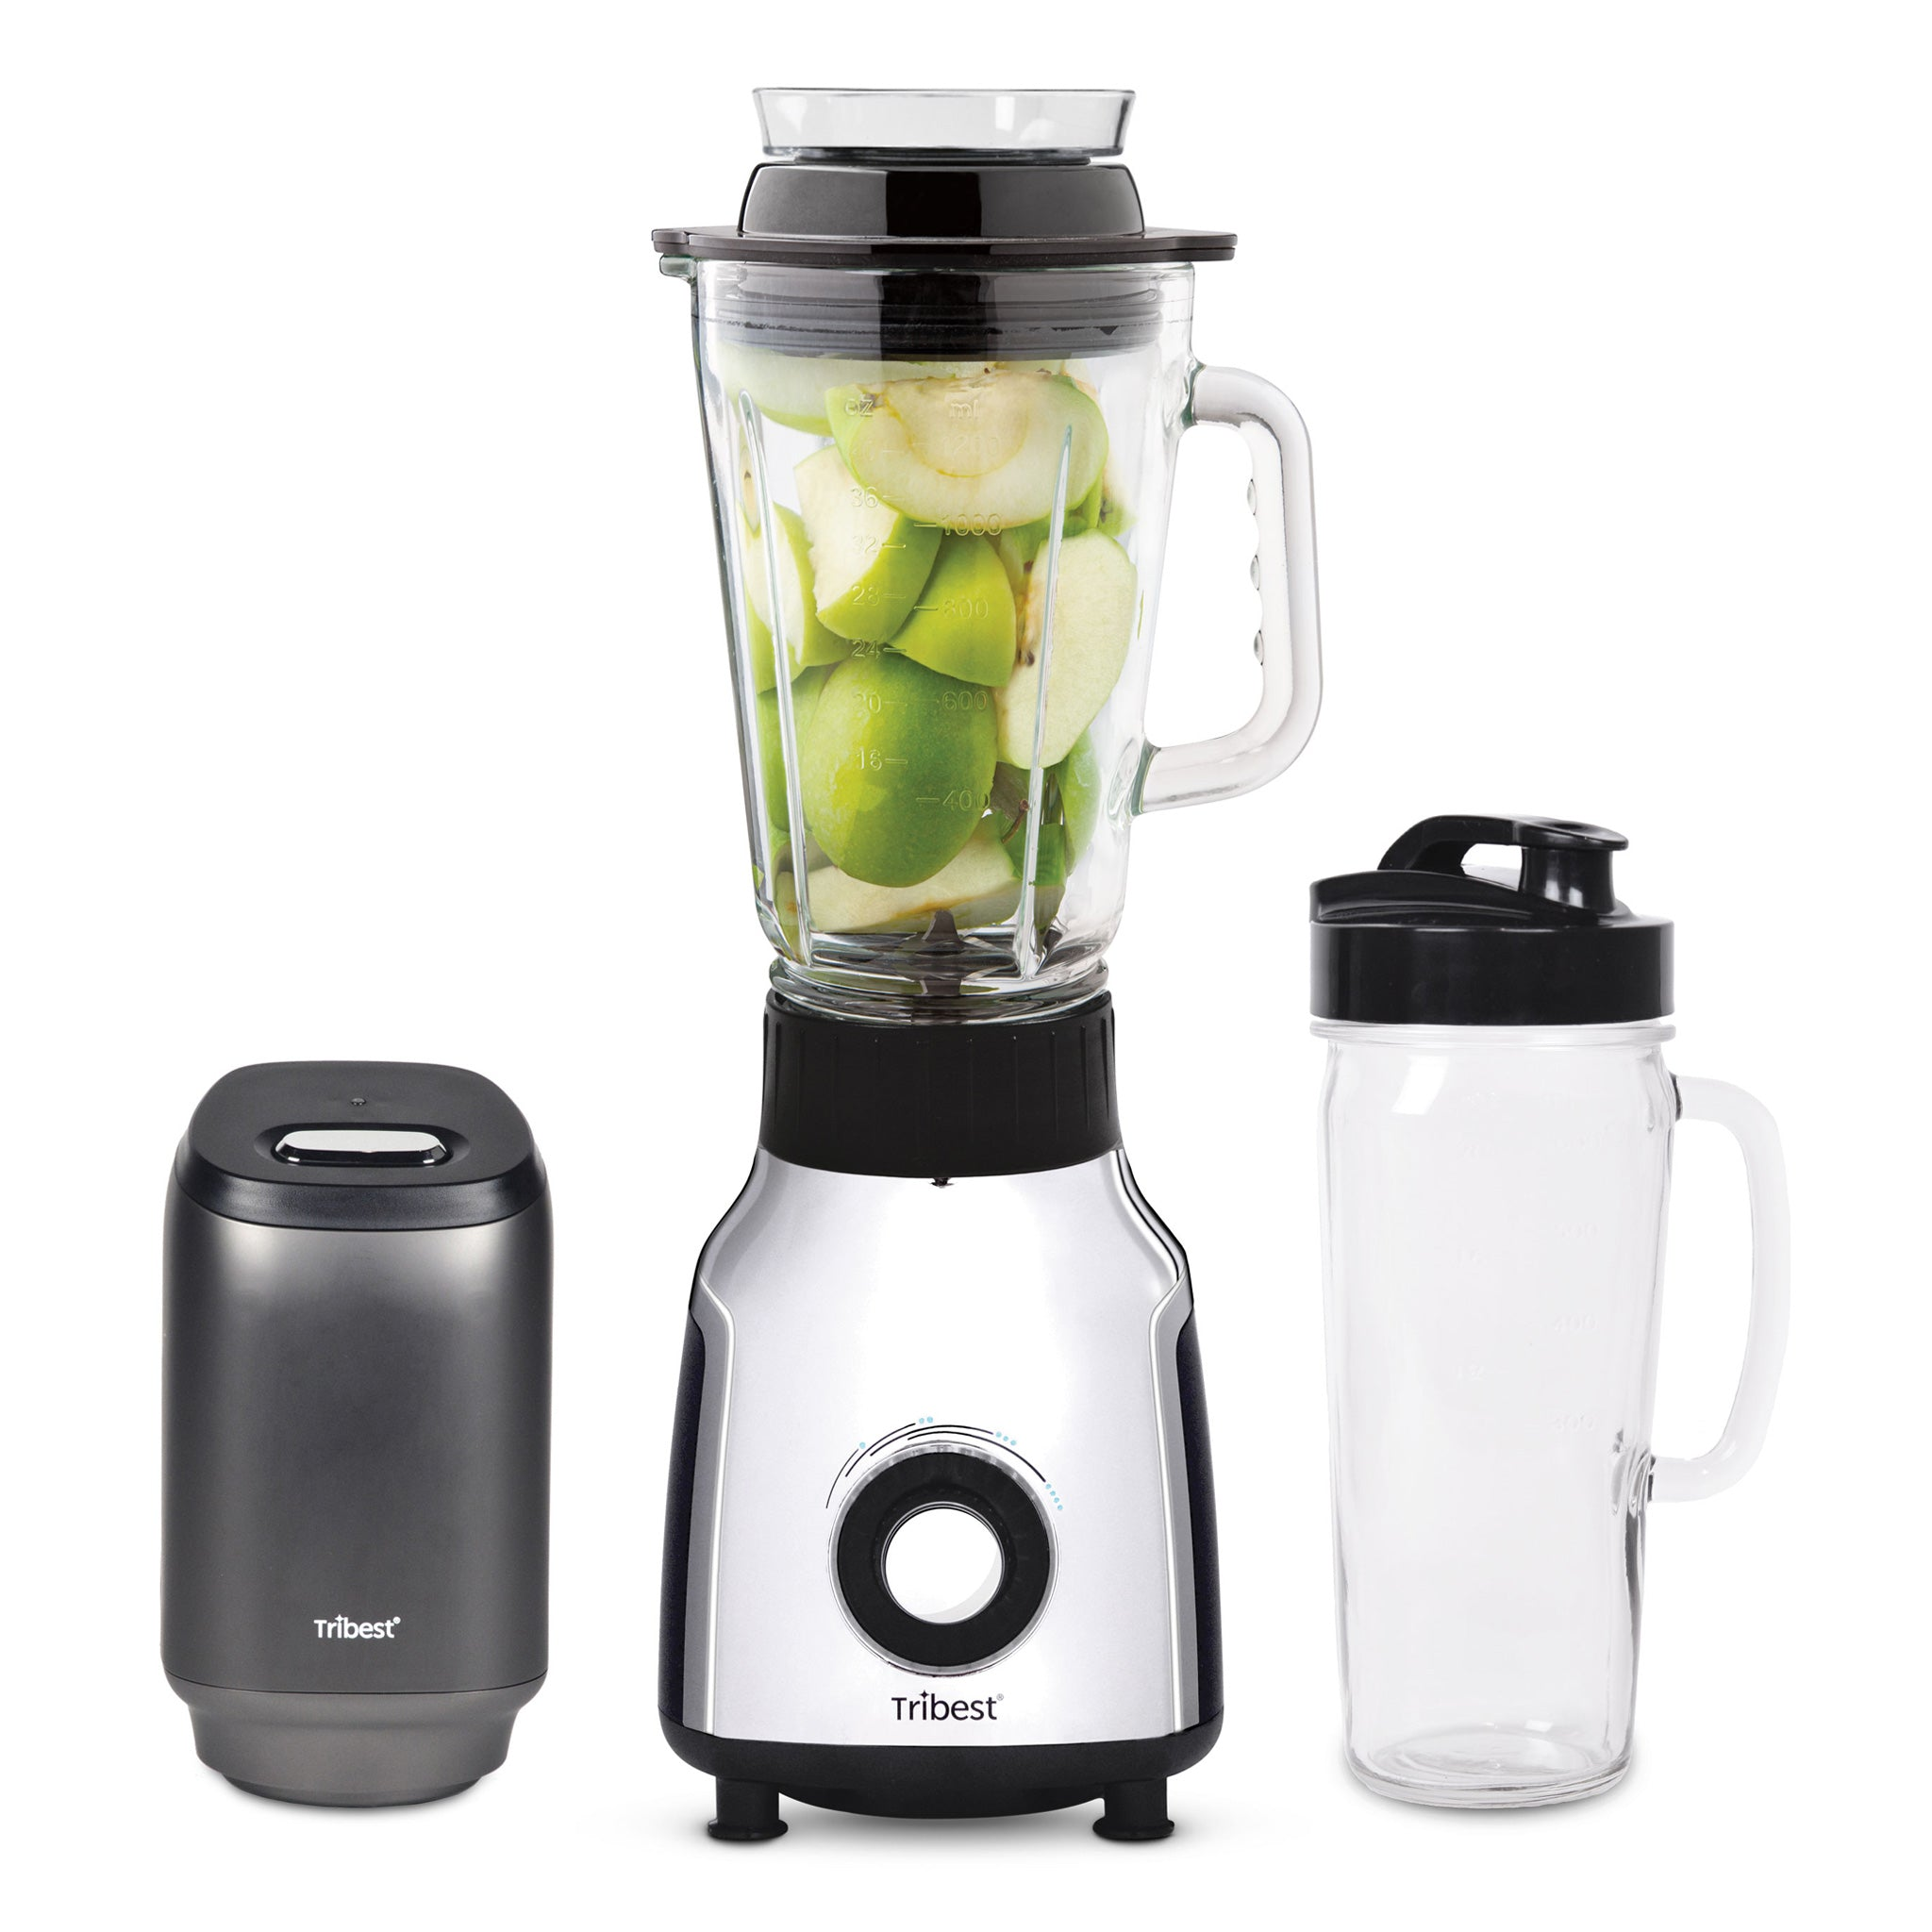 Glass Personal Blender Single-Serving Vacuum Blender PBG-5001-A - Tribest